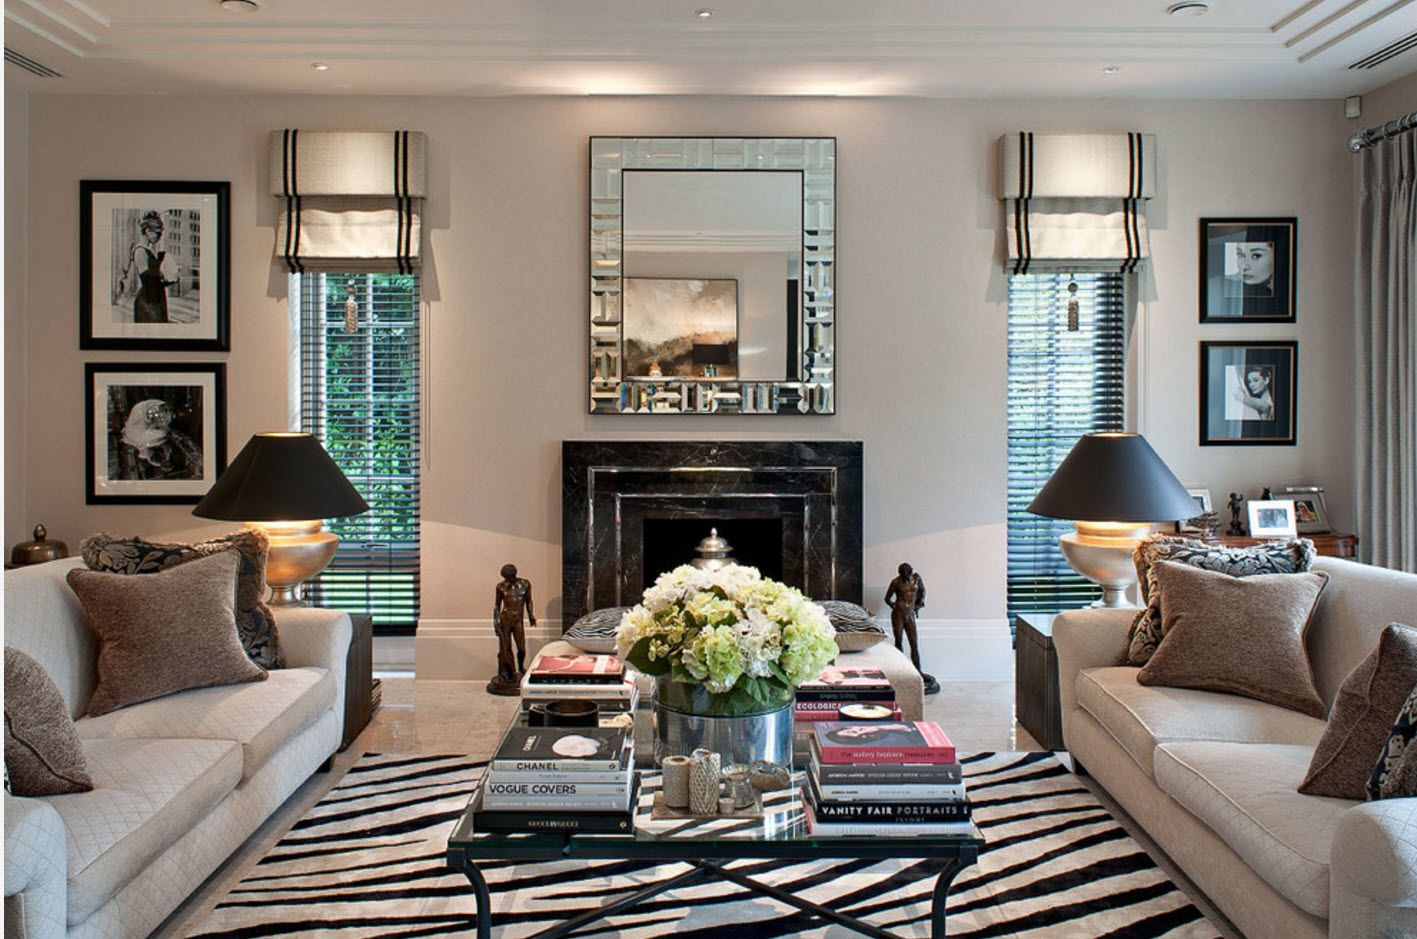 Zebra carpet in the classic living